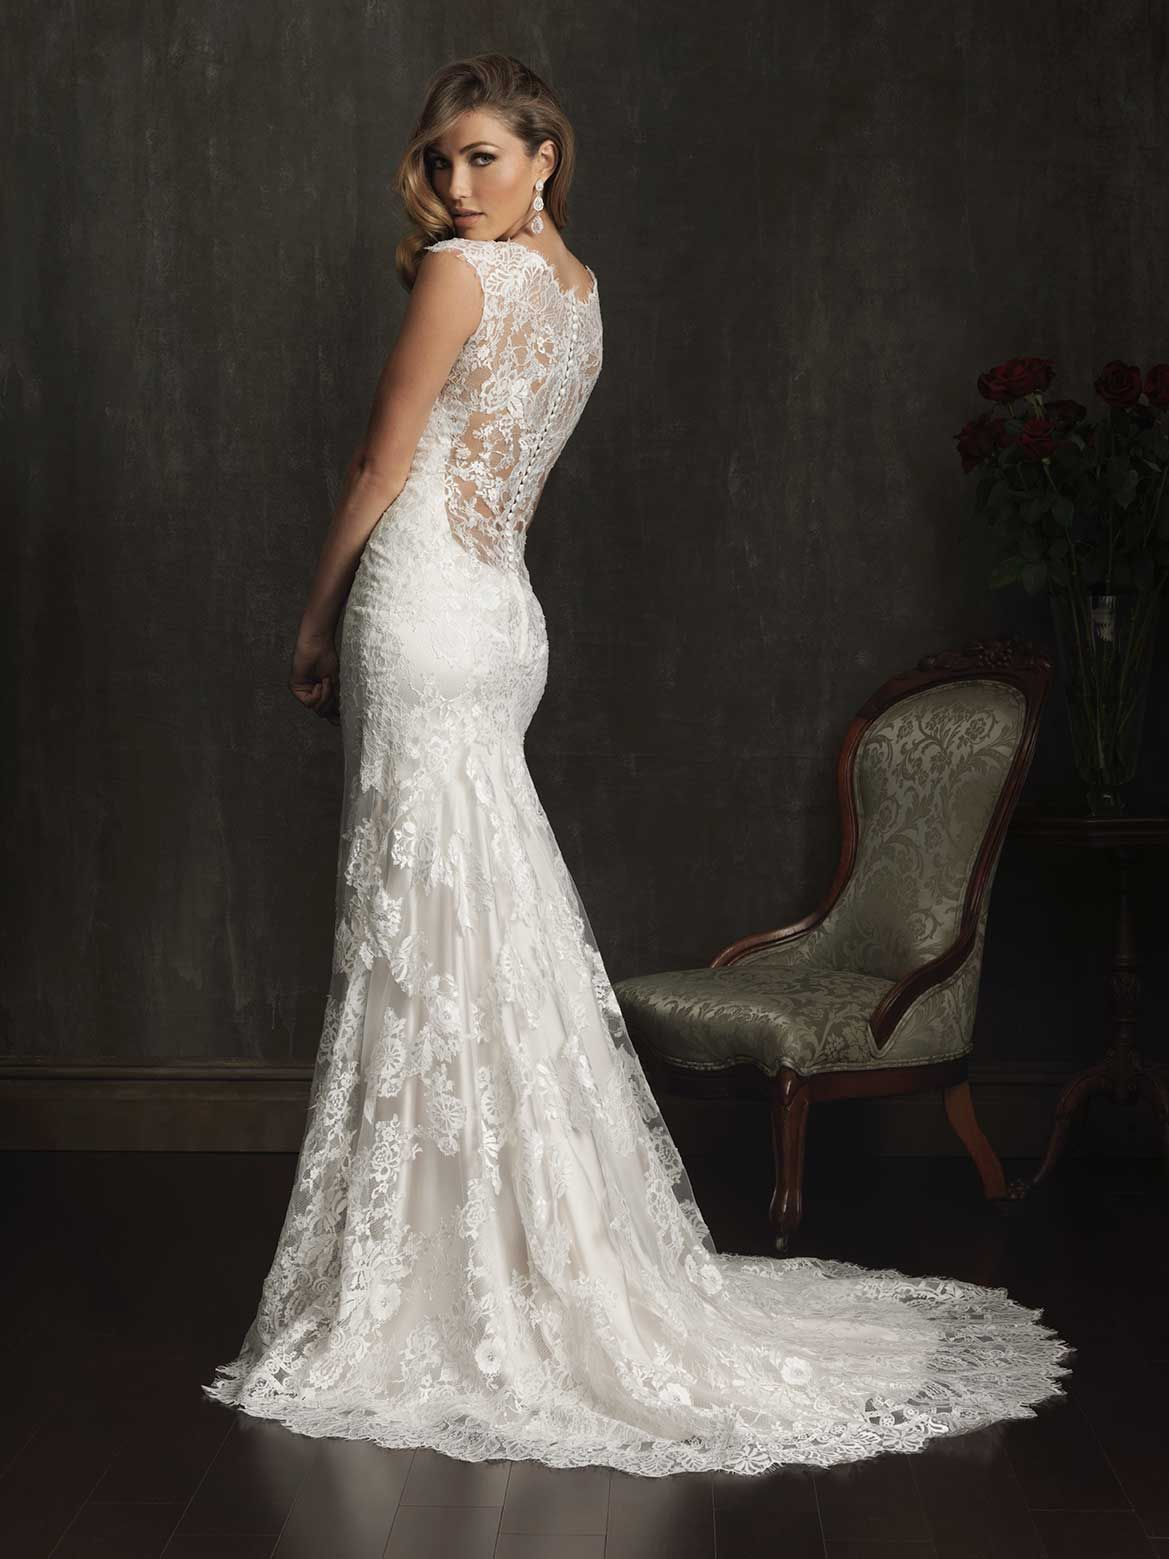 36 low back wedding dresses allure bridals wedding dress and wedding 36 low back wedding dresses junglespirit Gallery